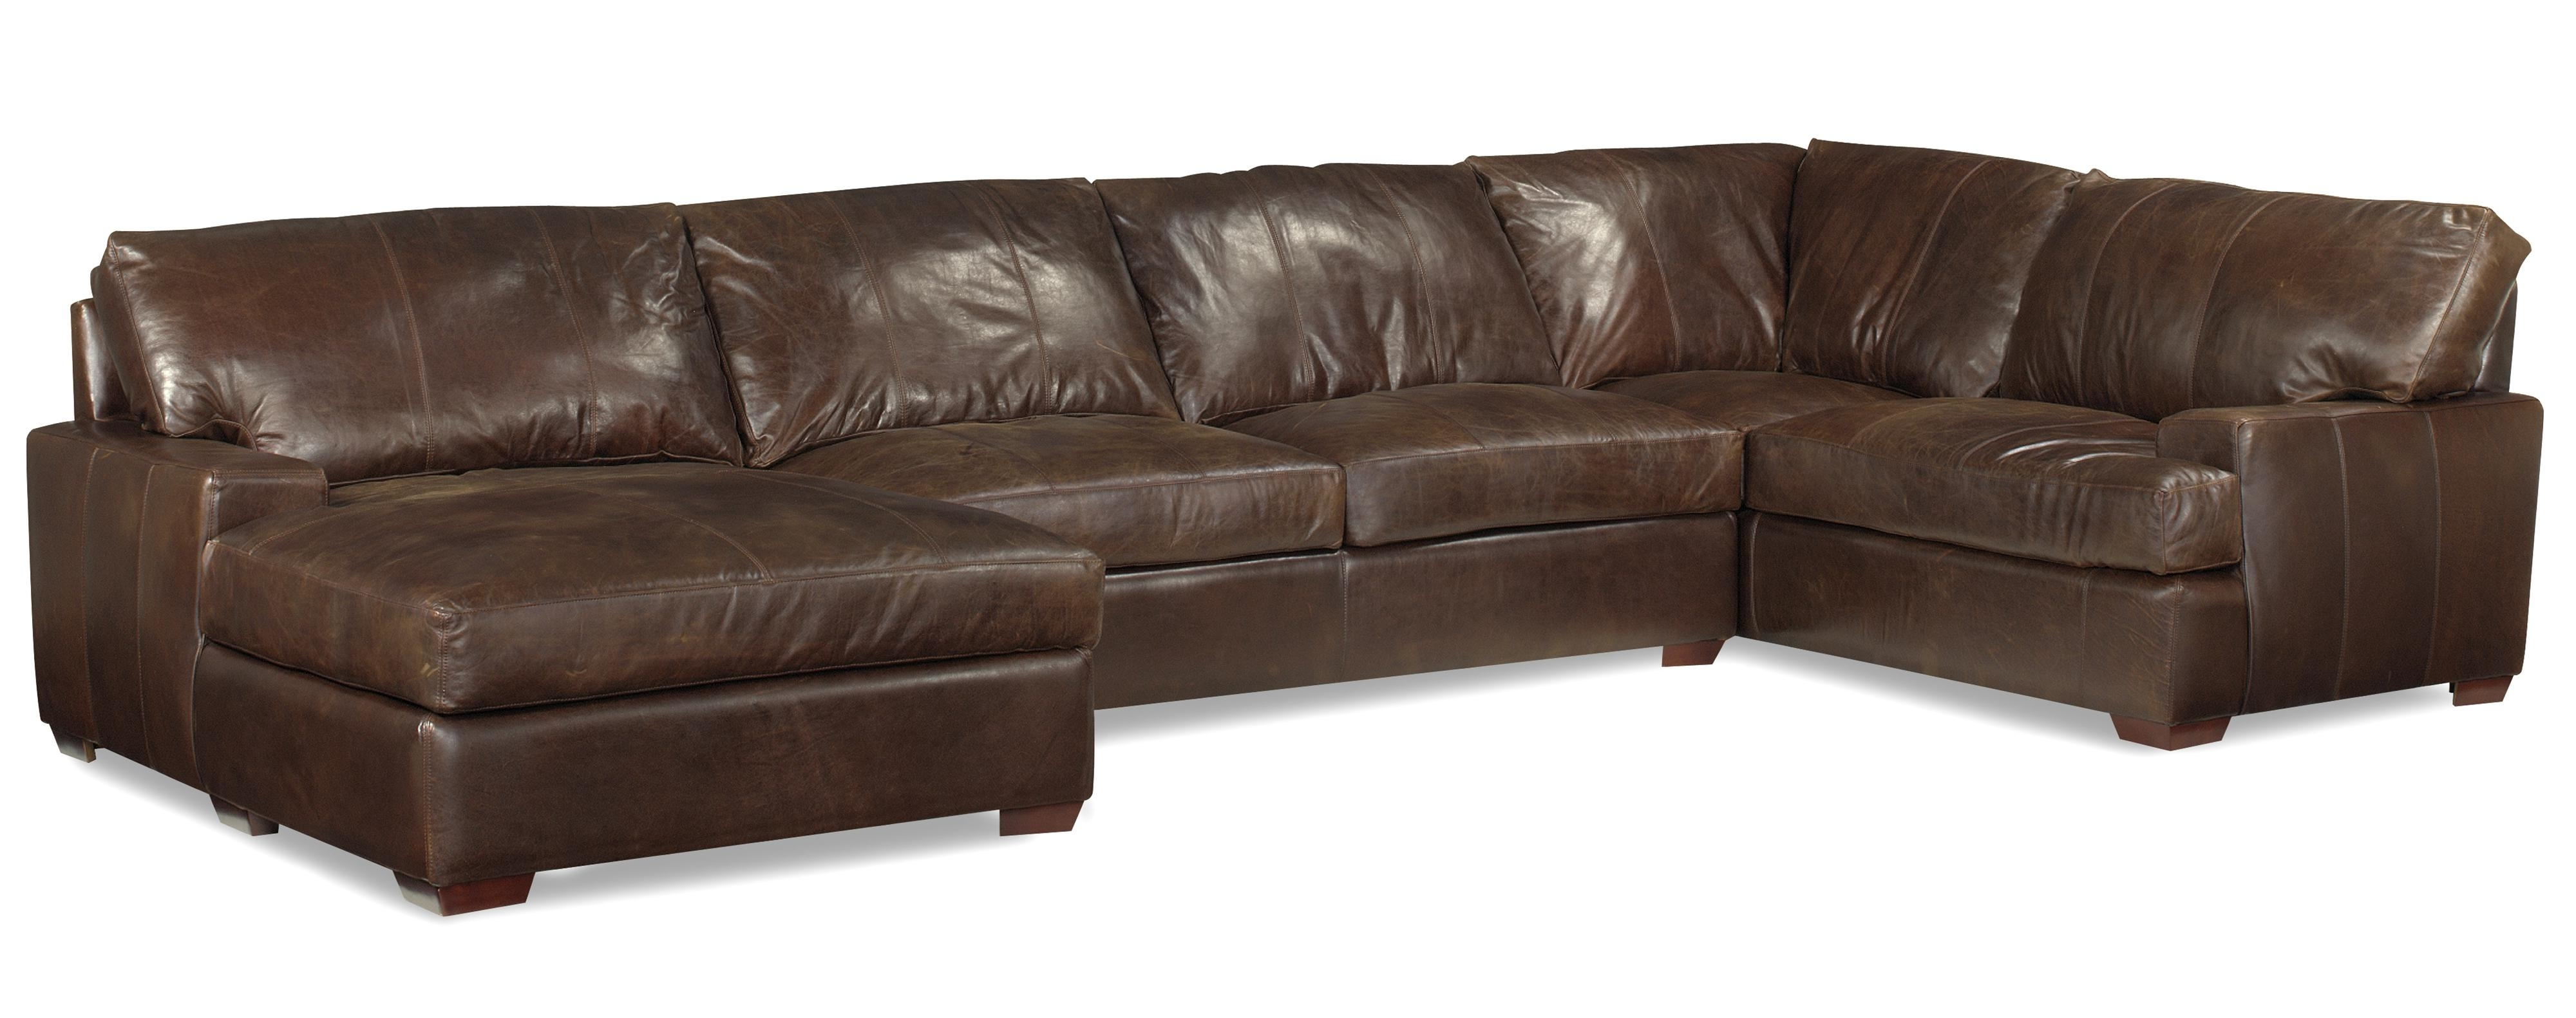 Leather Chaise Sofas With Trendy Usa Premium Leather 3635 Track Arm Sofa Chaise Sectional W/ Block (View 10 of 15)